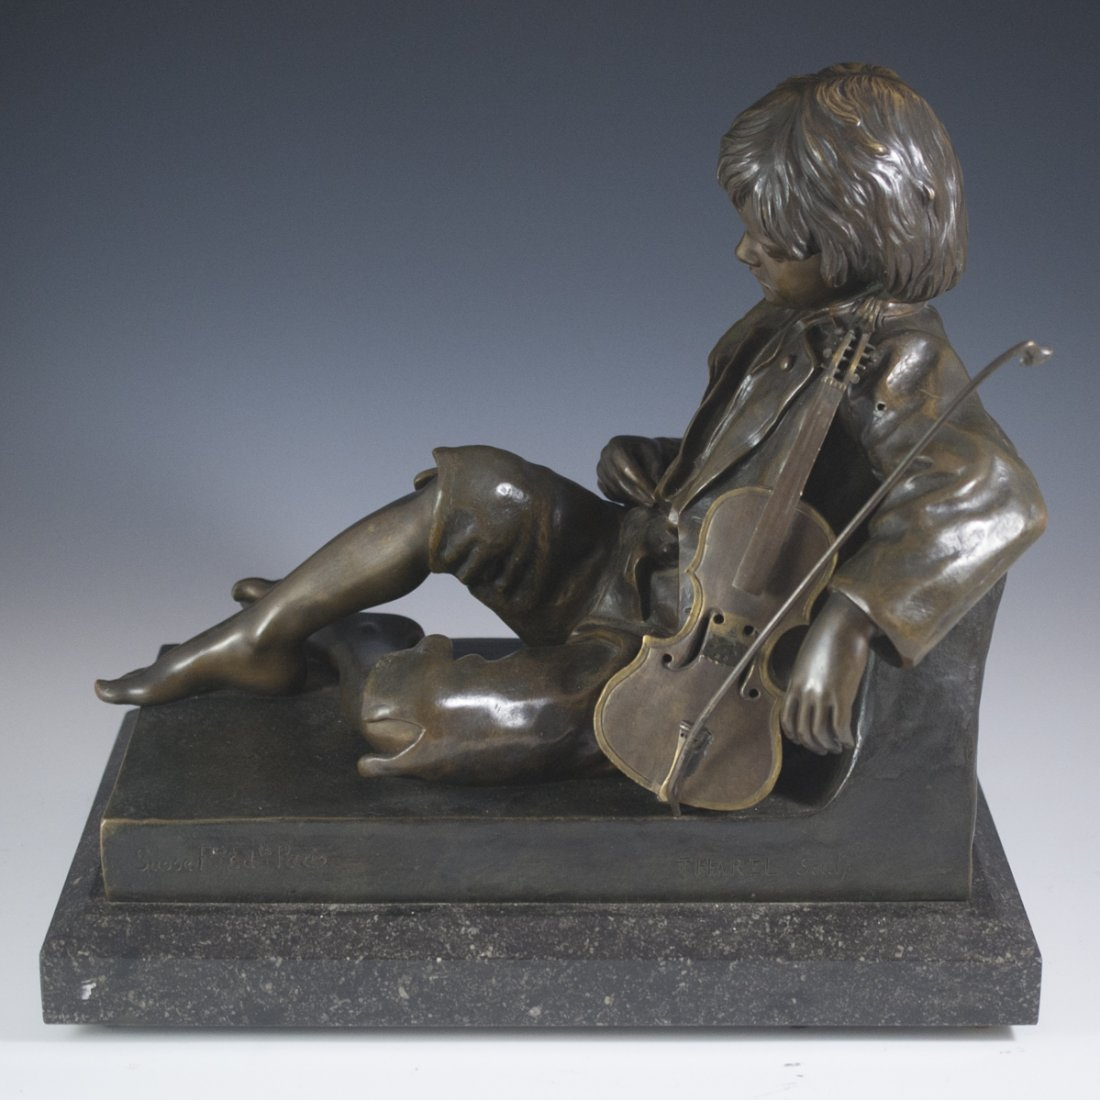 LŽon Tharel (French 1858 - 1902) Susse Foundry Bronze - 8